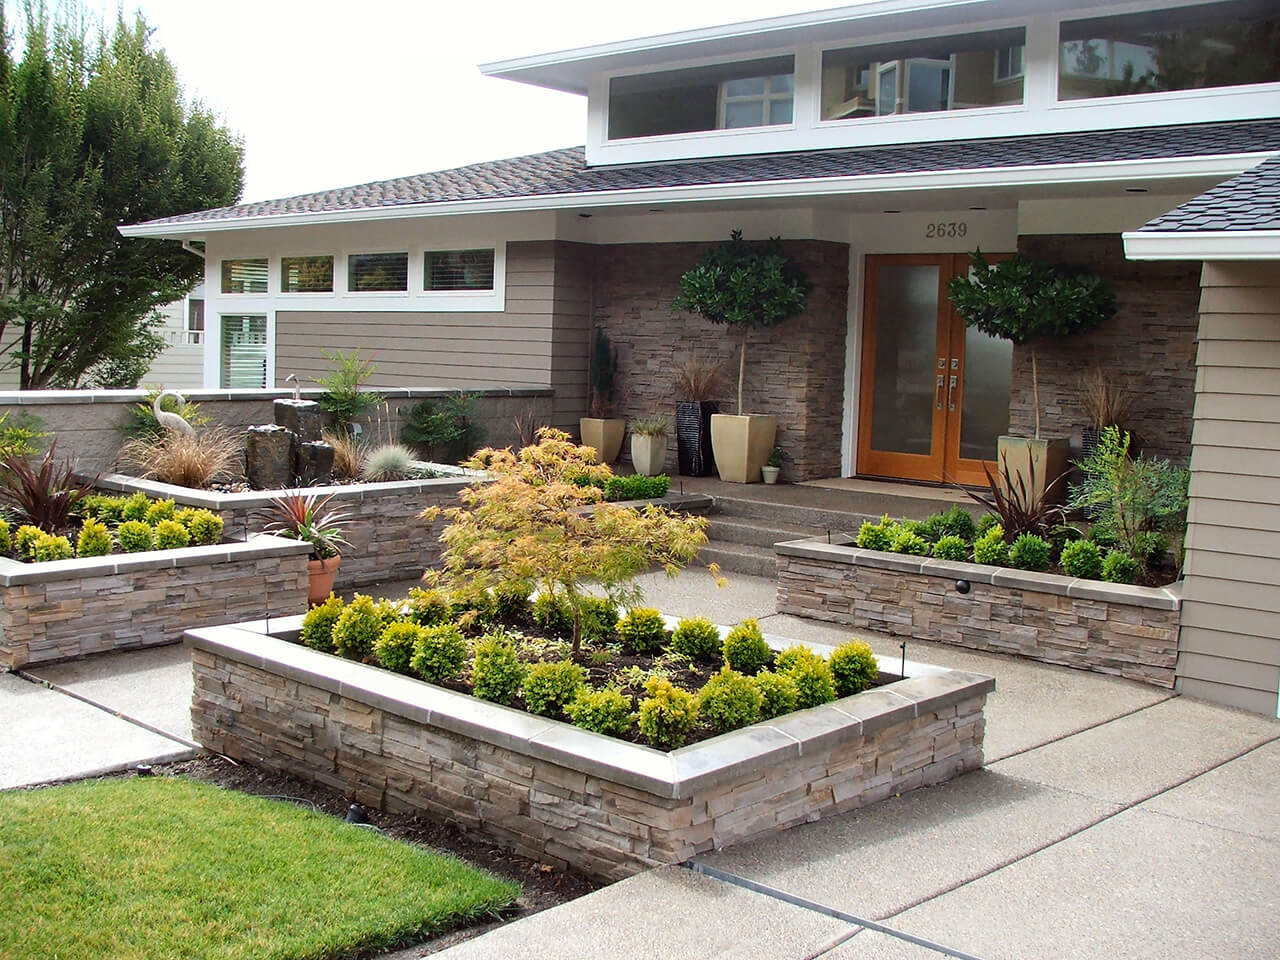 20 brilliant front garden landscaping ideas style motivation for Front lawn ideas